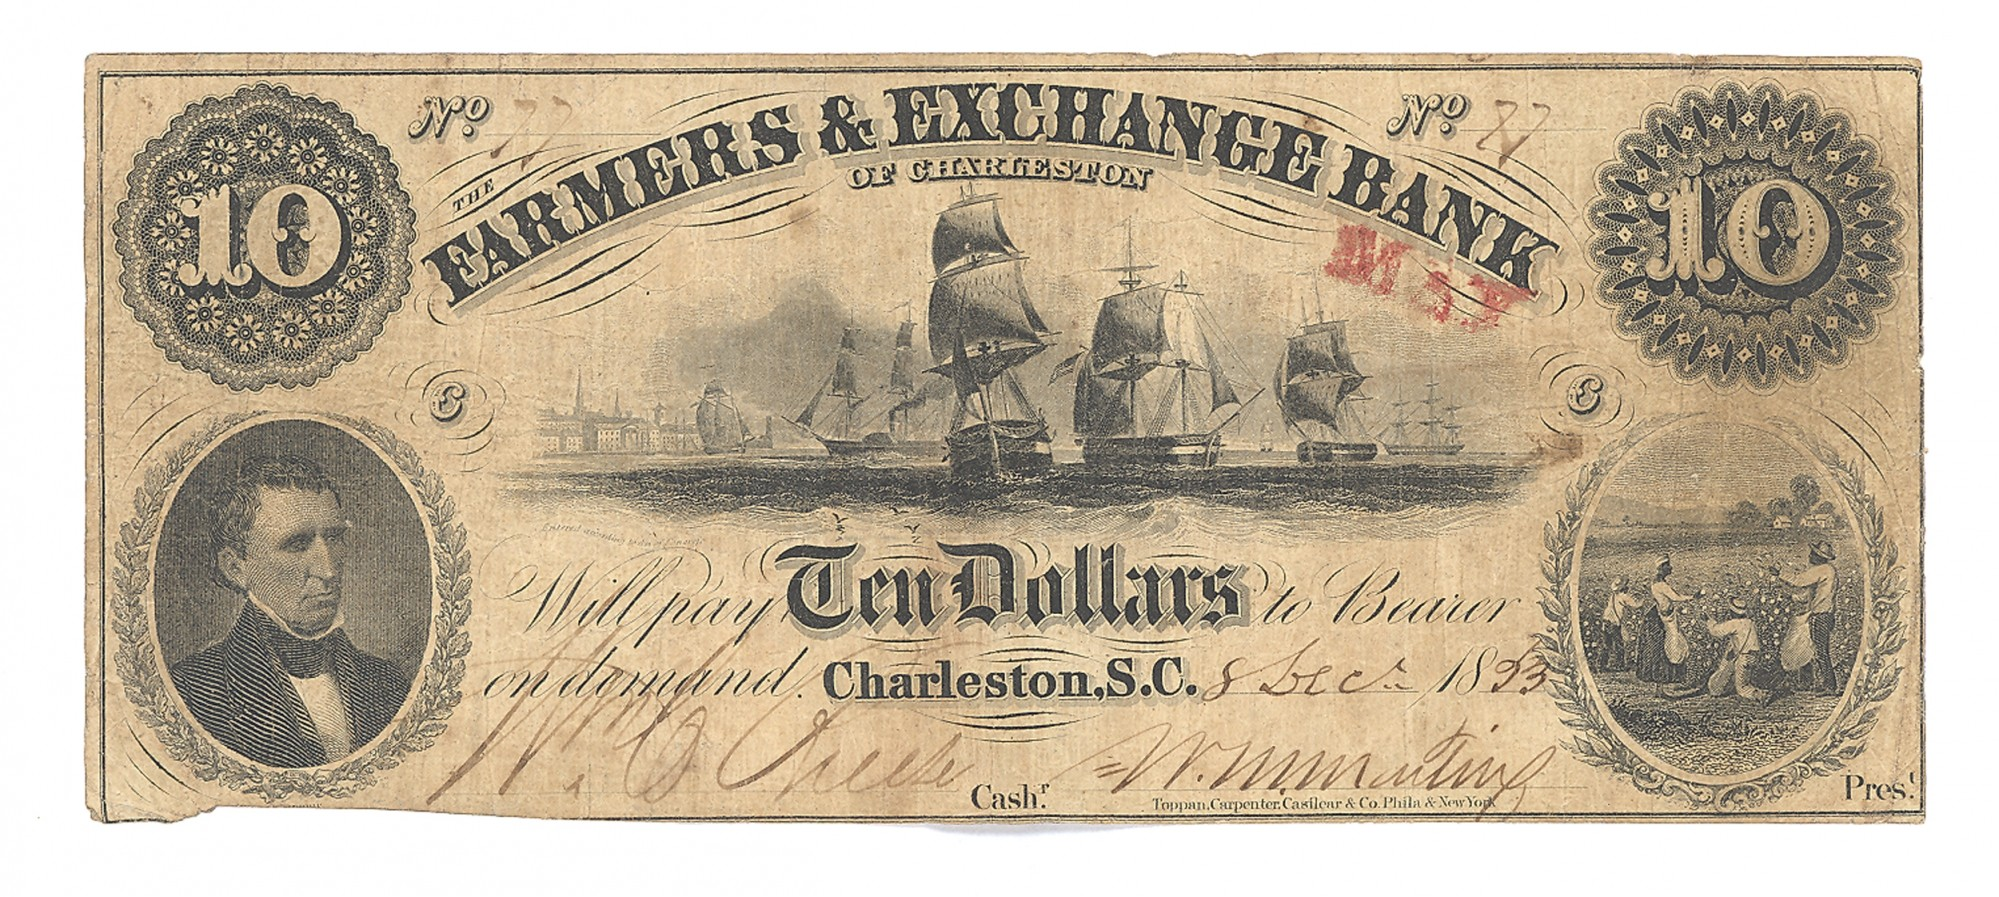 FARMERS & EXCHANGE BANK, CHARLESTON SOUTH CAROLINA $10 NOTE